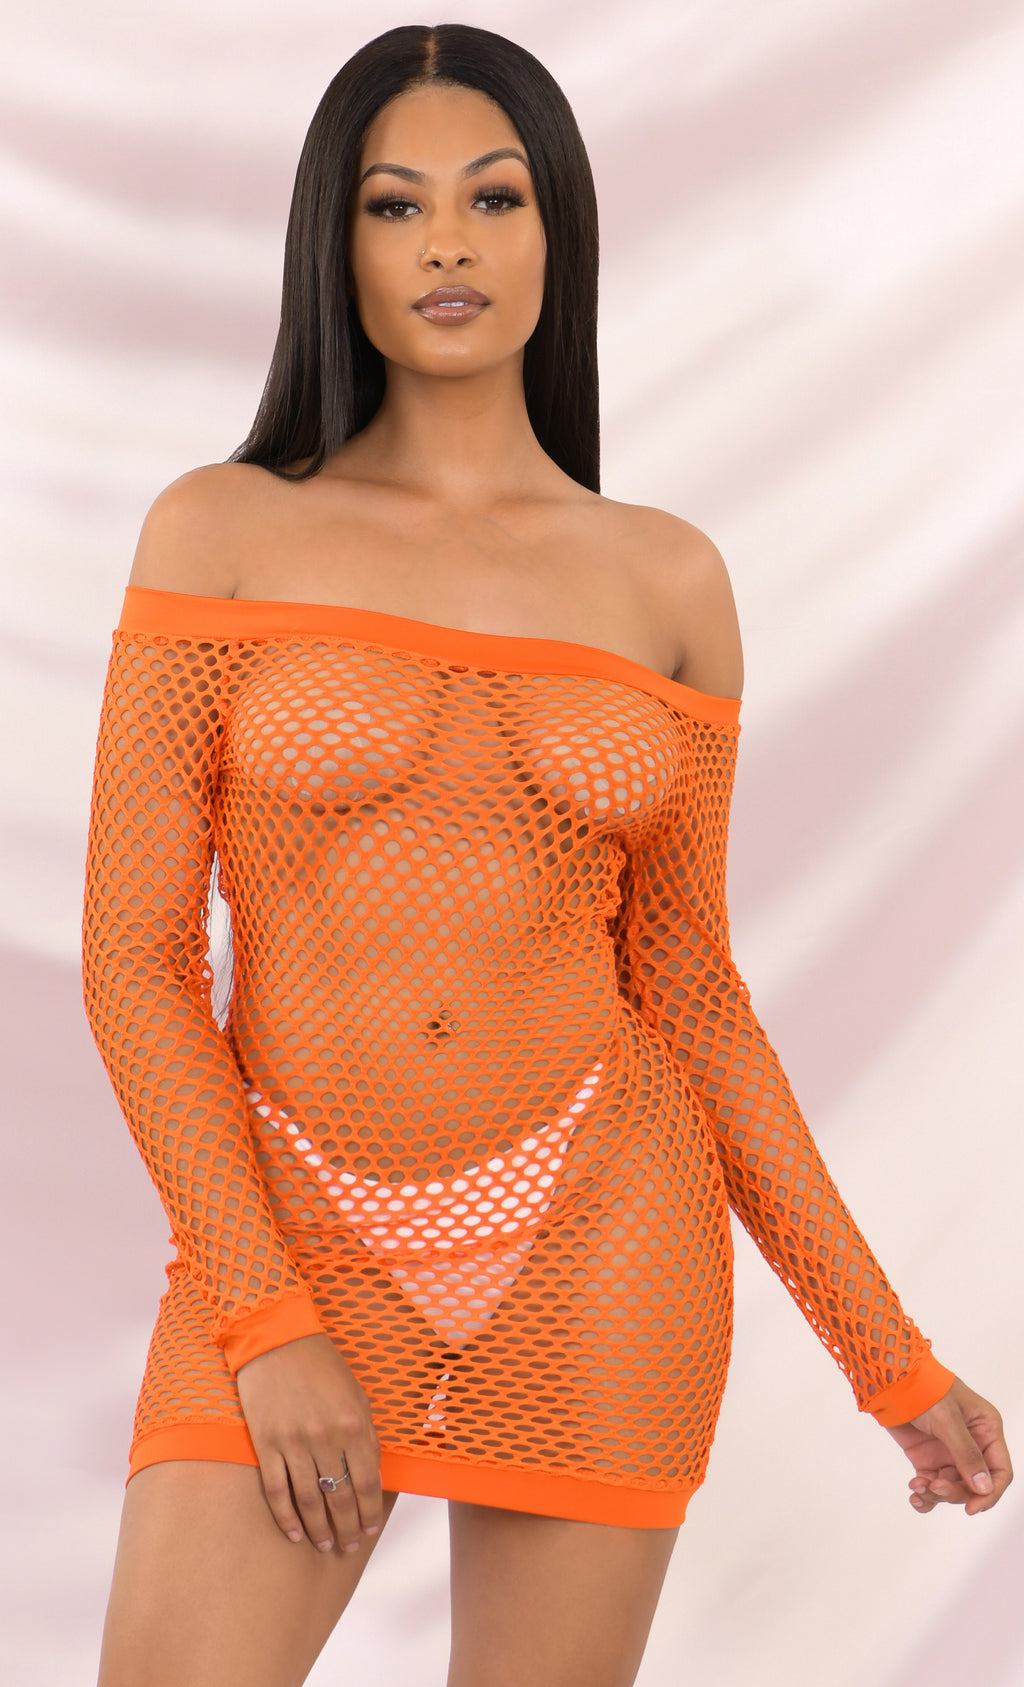 You Bet Fishnet Orange Mesh Beach Cover Up Cut Out Long Sleeve Off The Shoulder Bodycon Casual Mini Dress